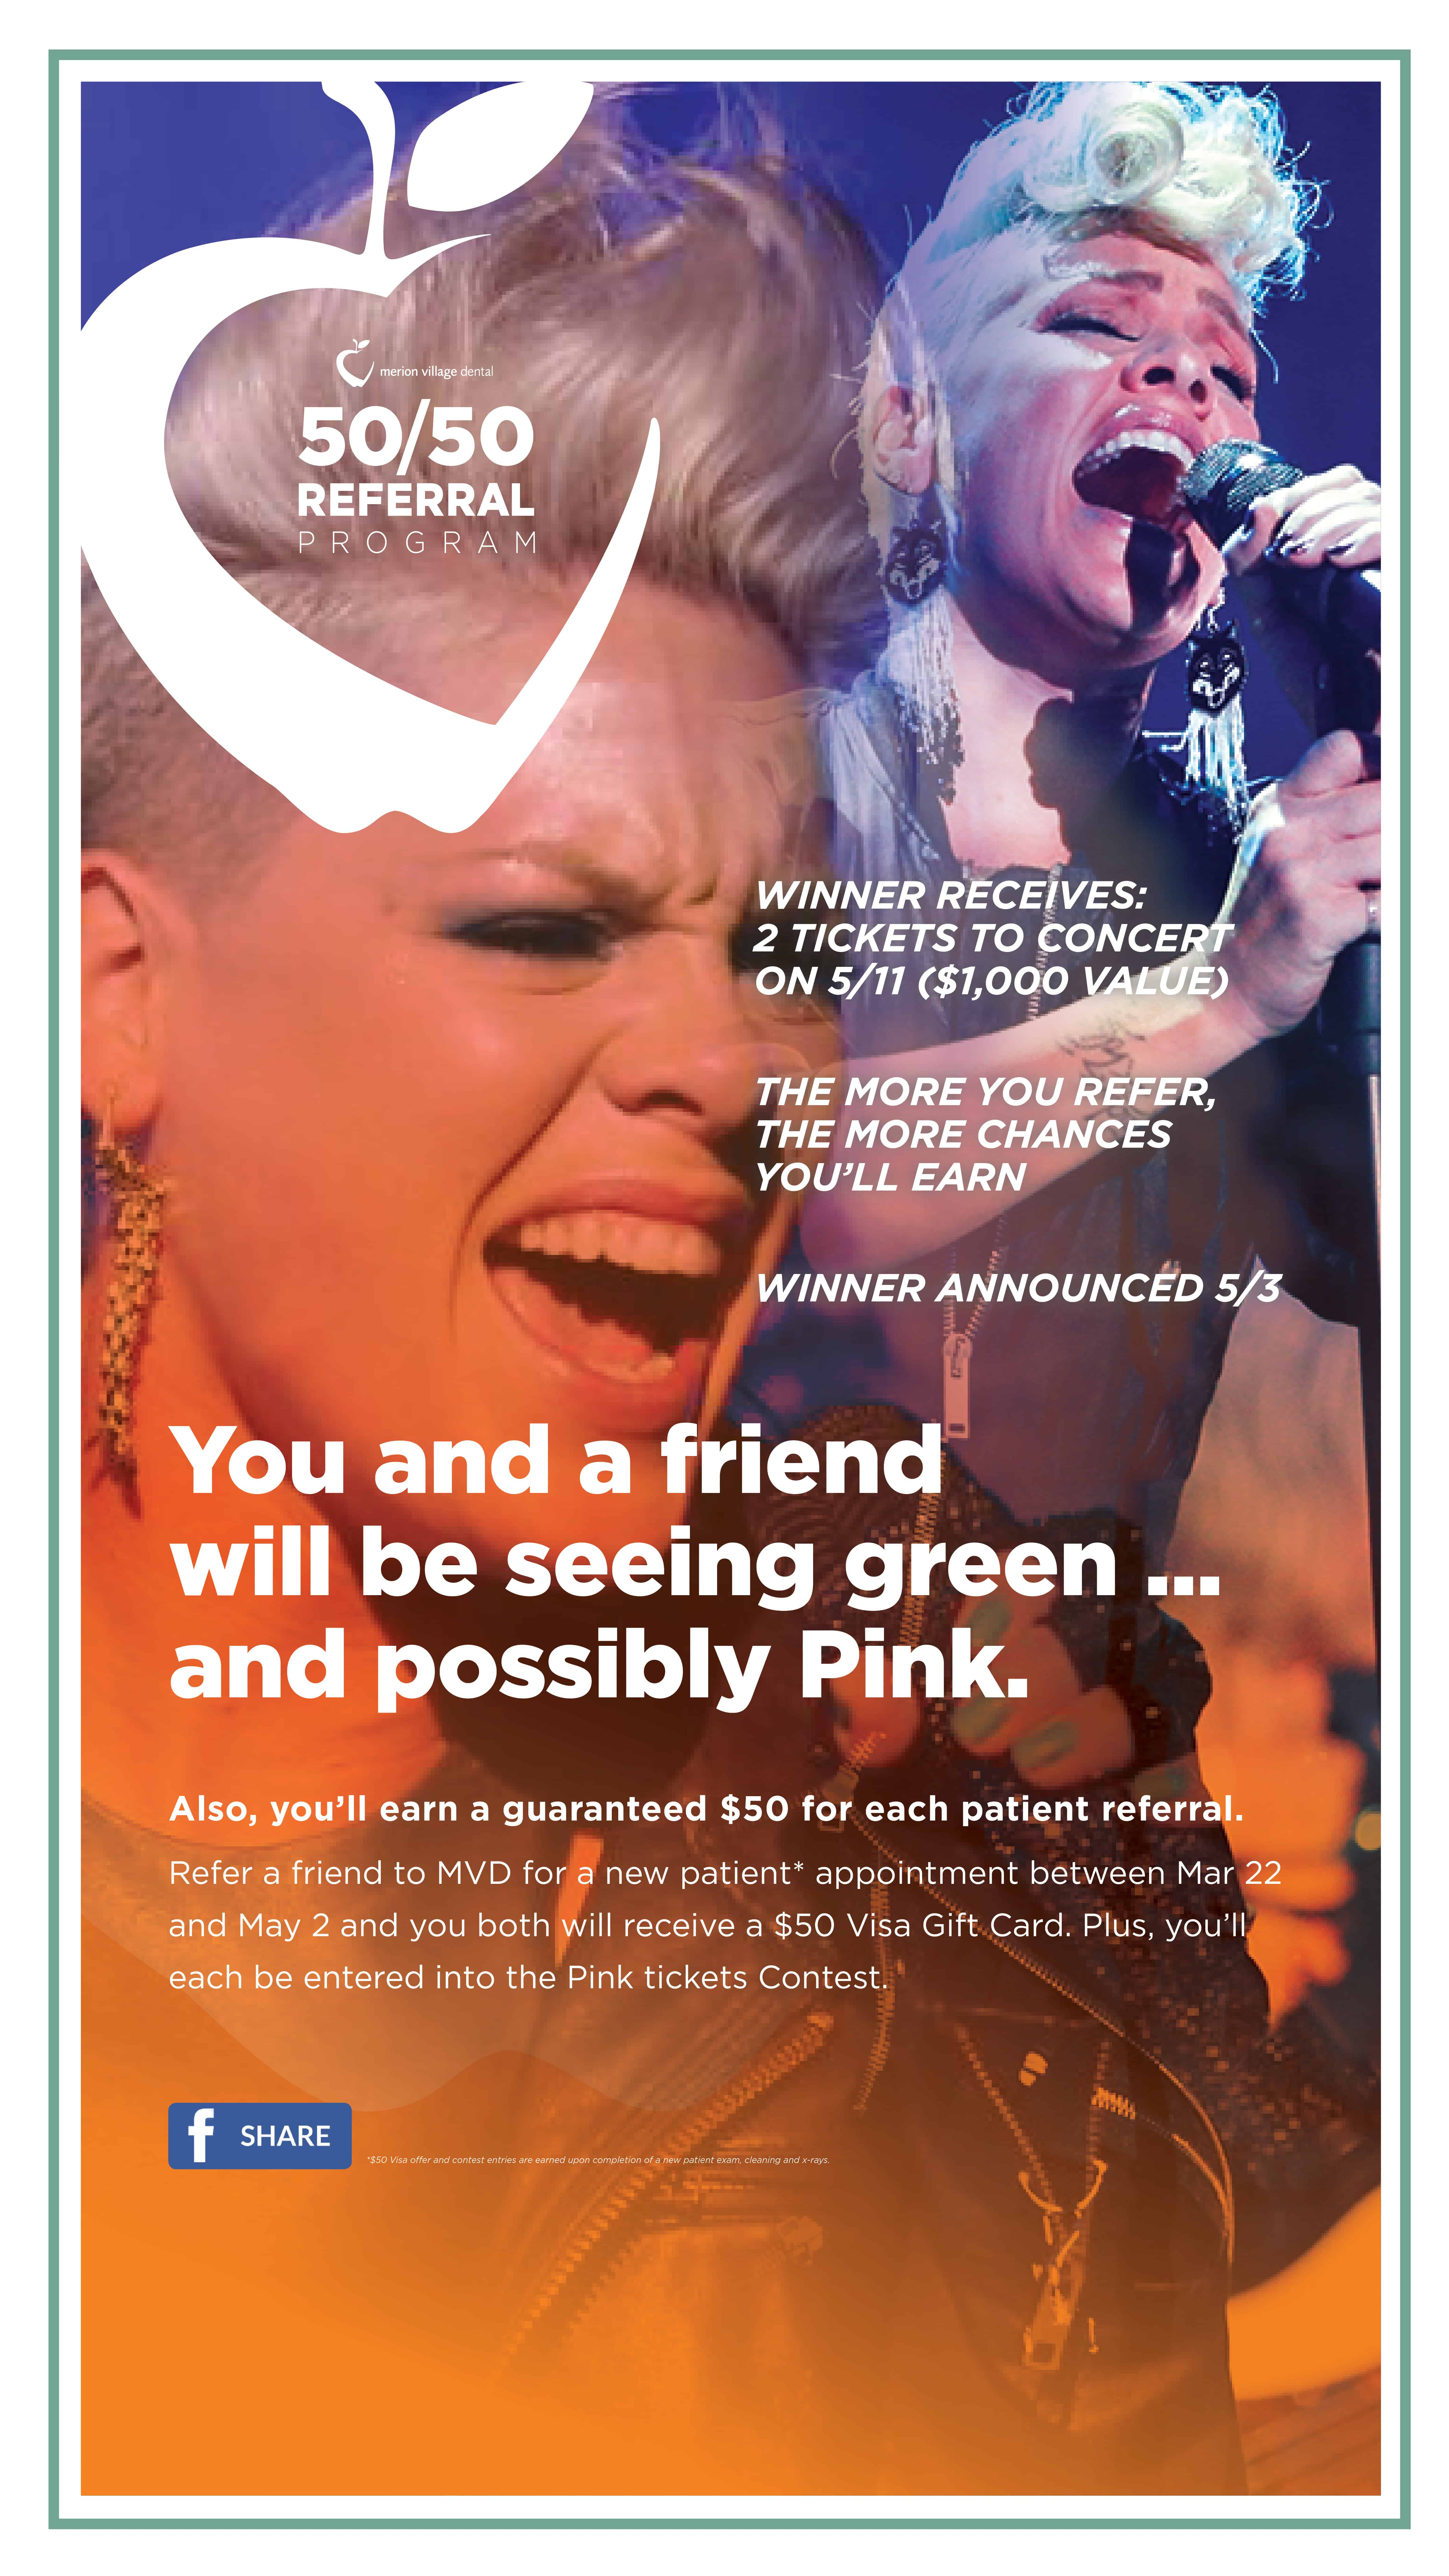 You could win tickets to see Pink in Concert!